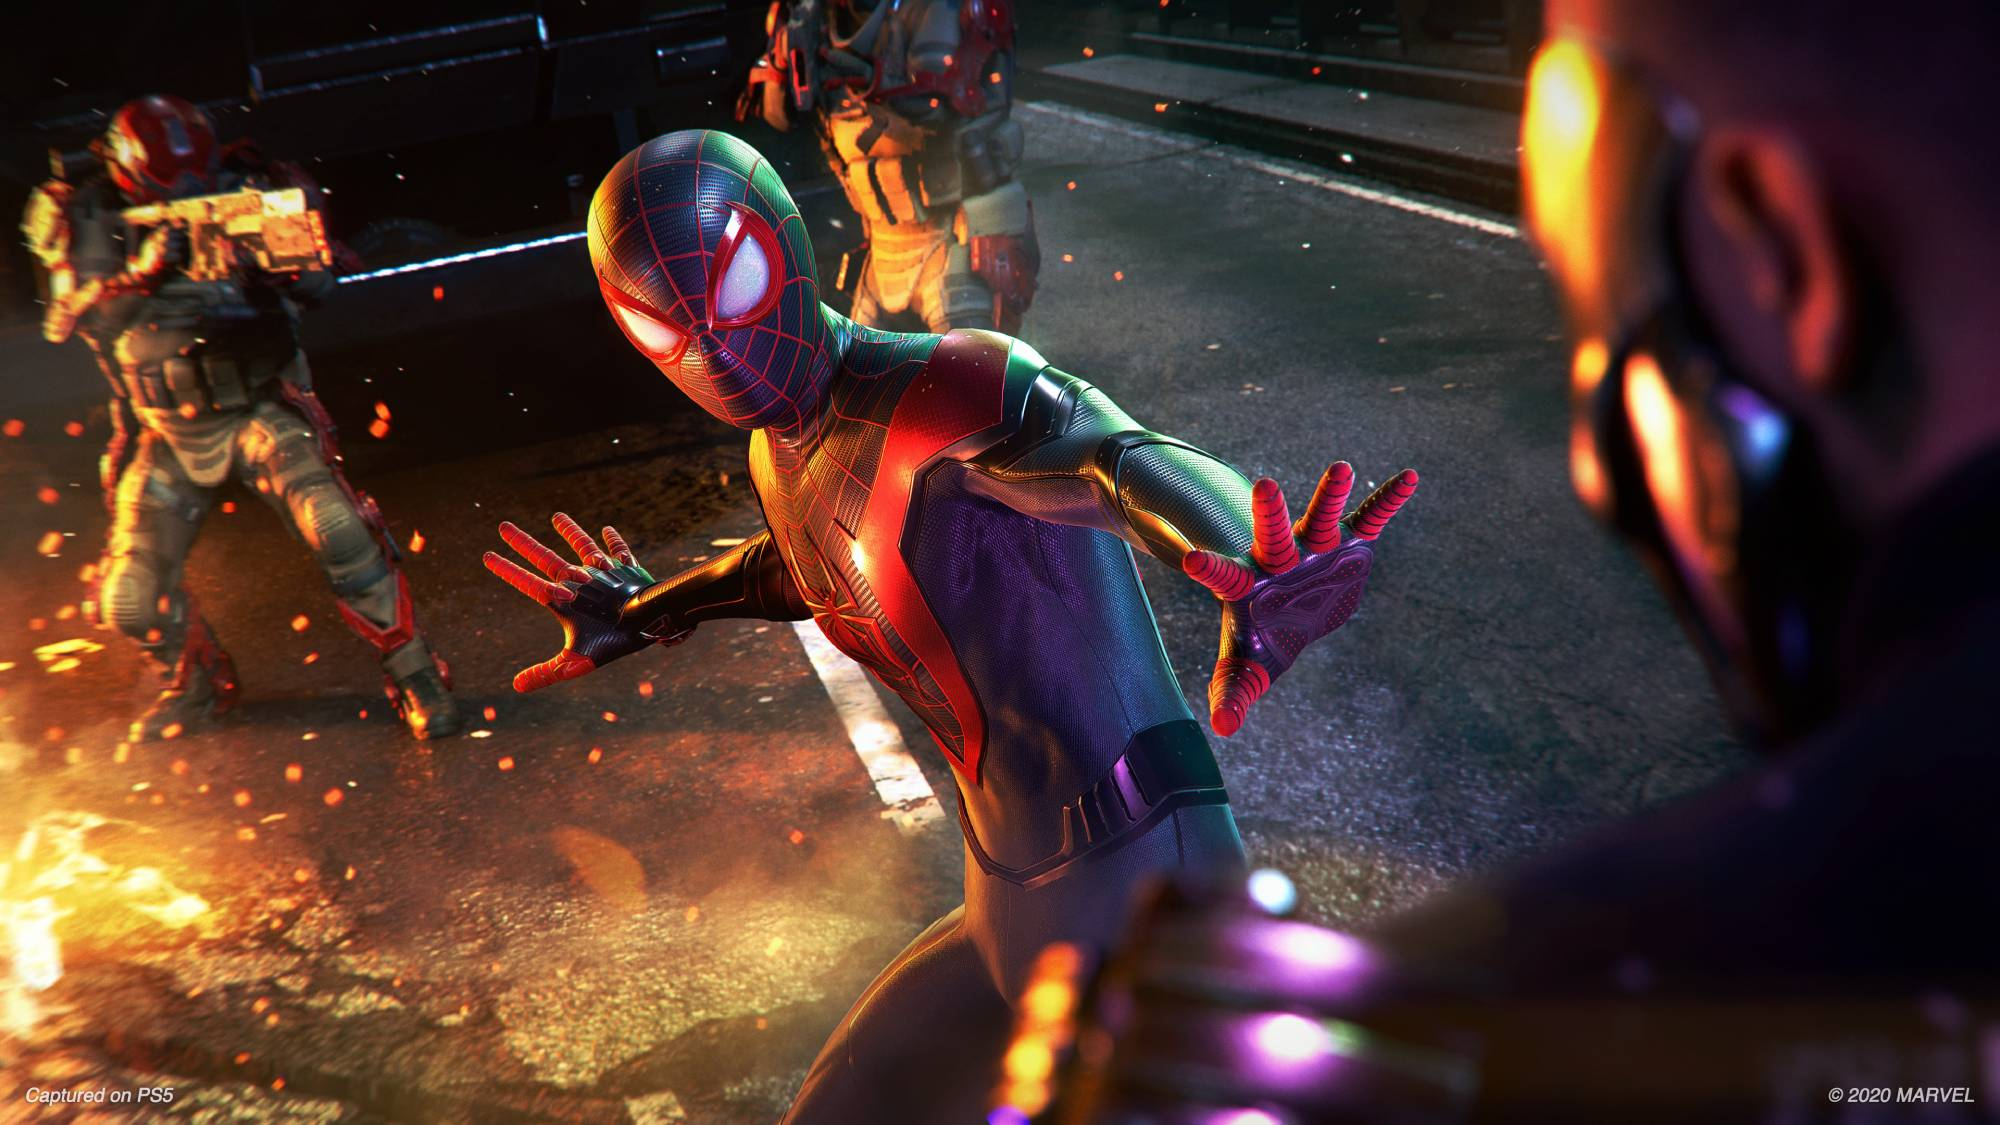 PS5 Exclusive Games, Launch Week Madness and where to Snag a Playstation or Xbox